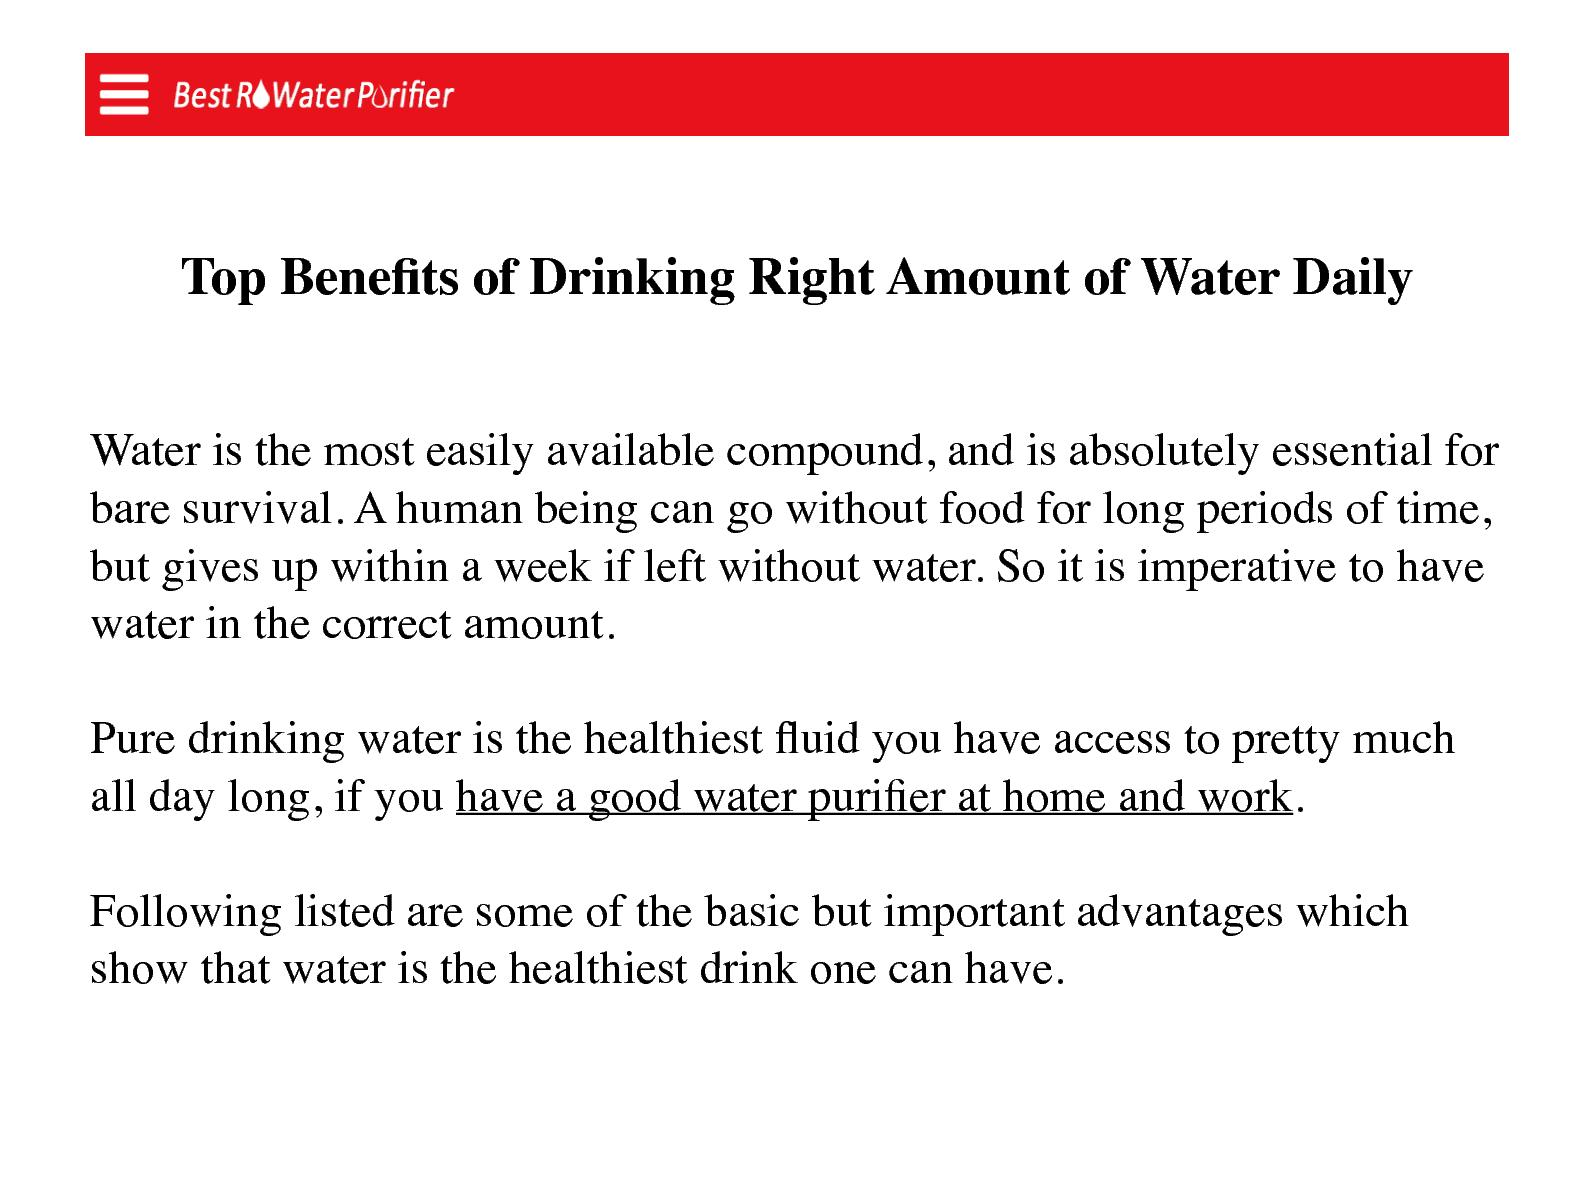 Drinking Pure Water Will Help Prevent Which Of The Following